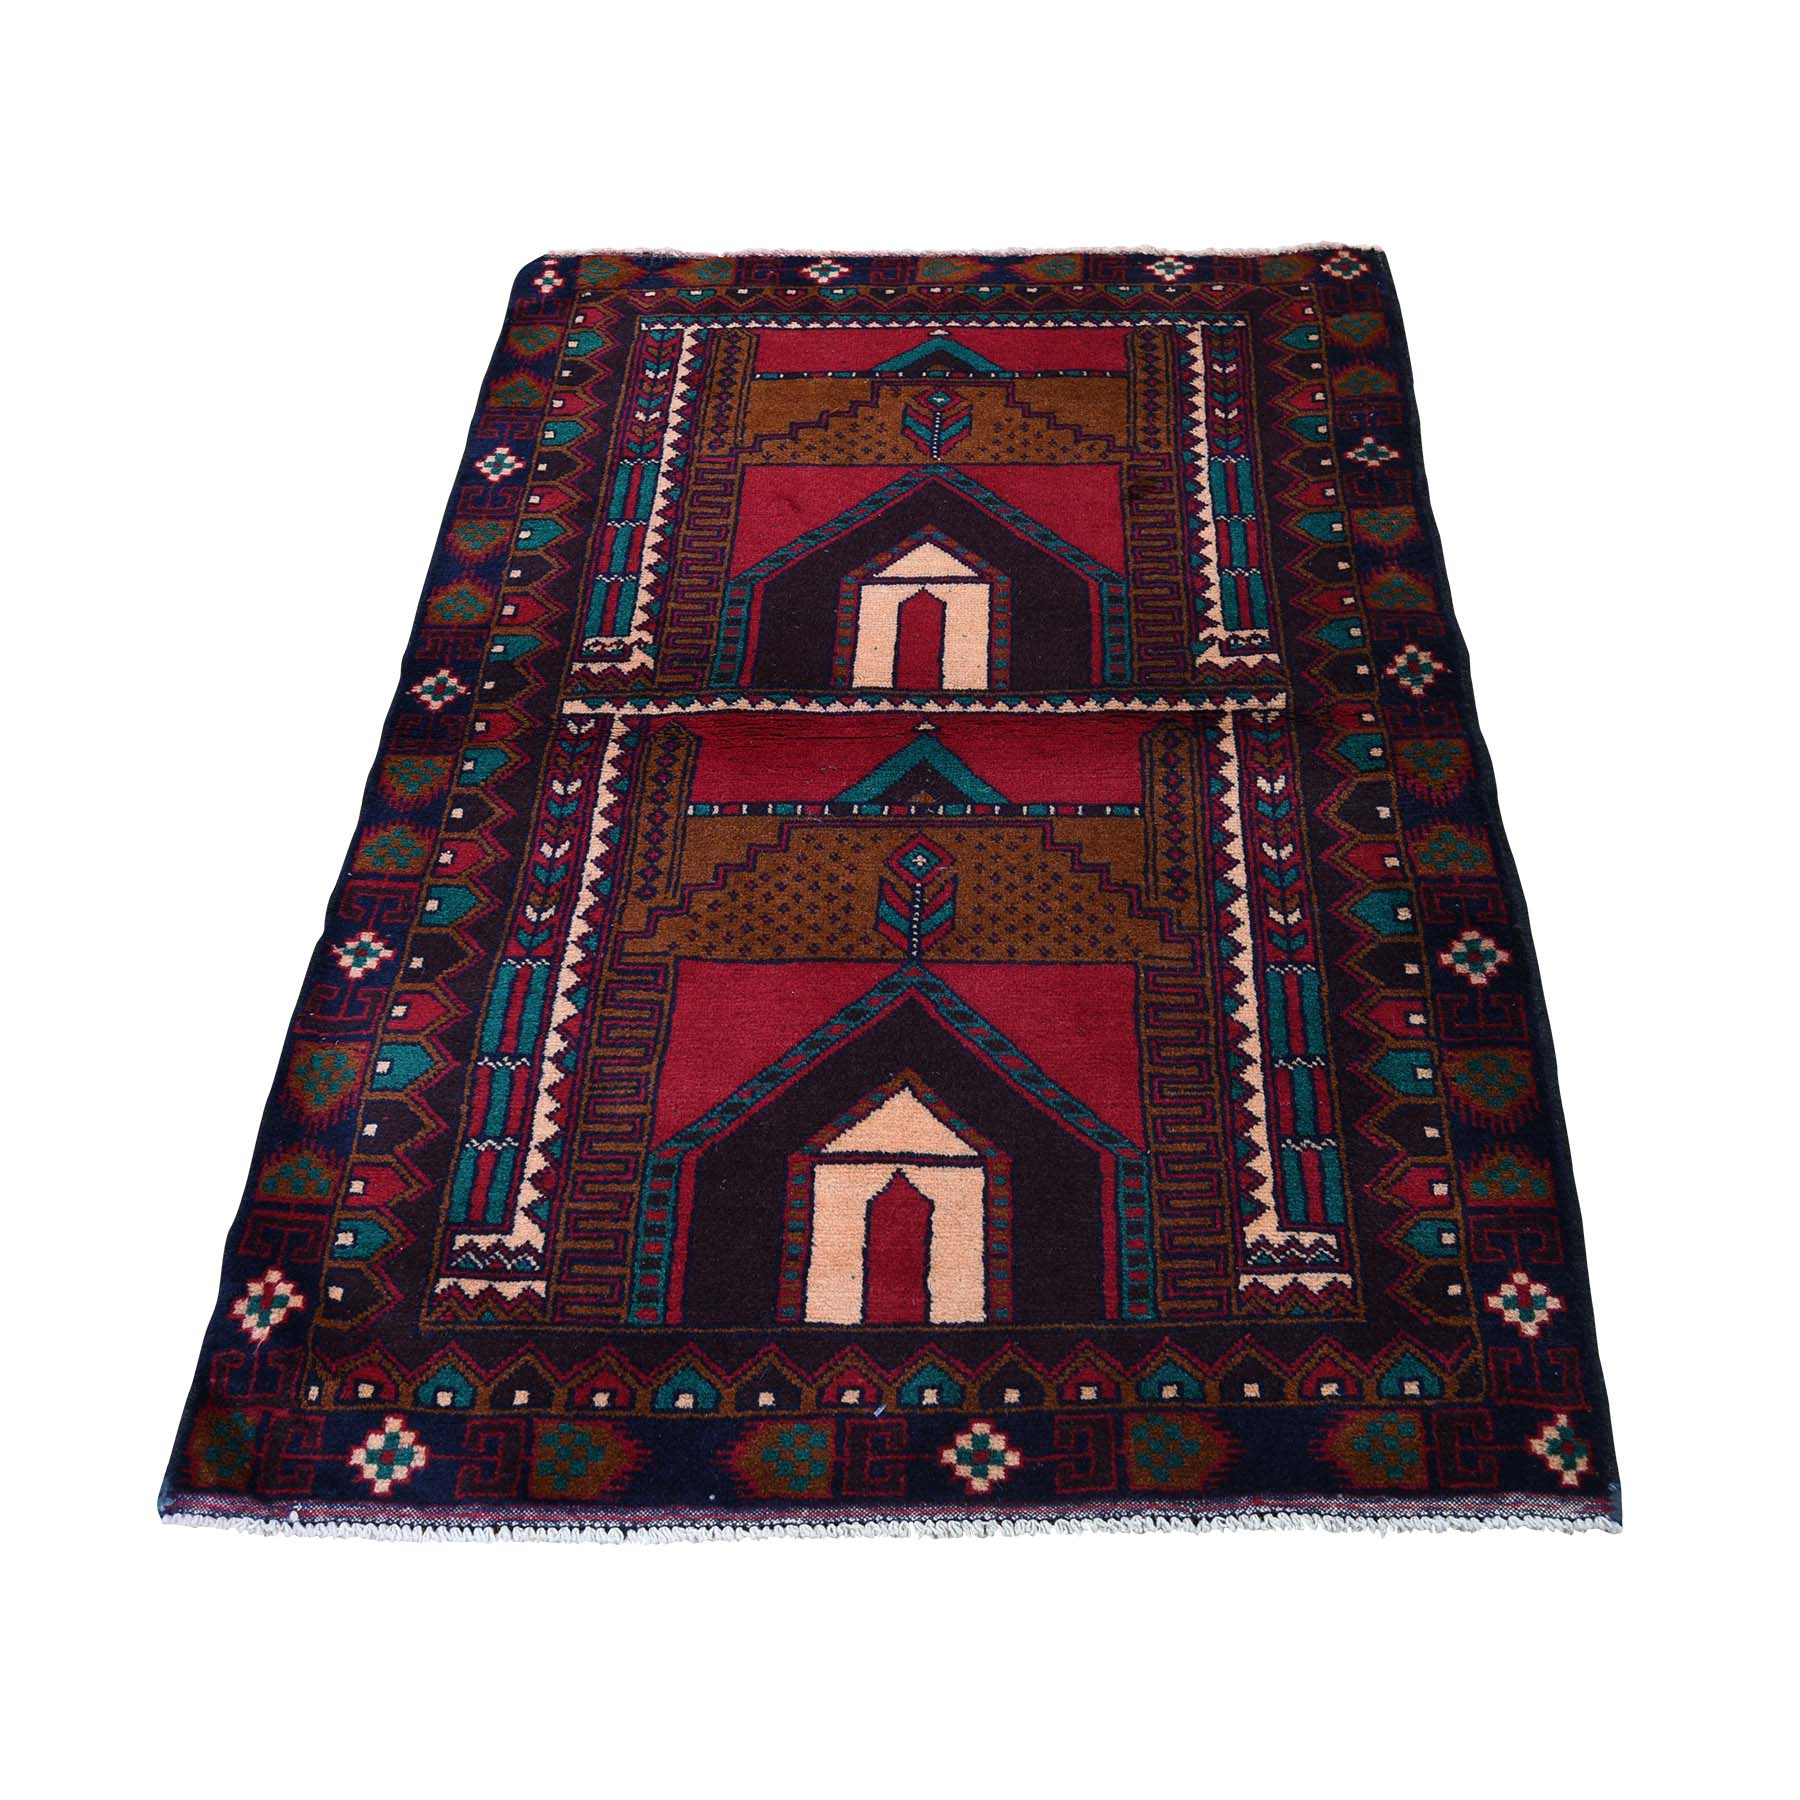 "3'X4'6"" Pure Wool Hand-Knotted Vintage Afghan Baluch Oriental Rug moadb8db"